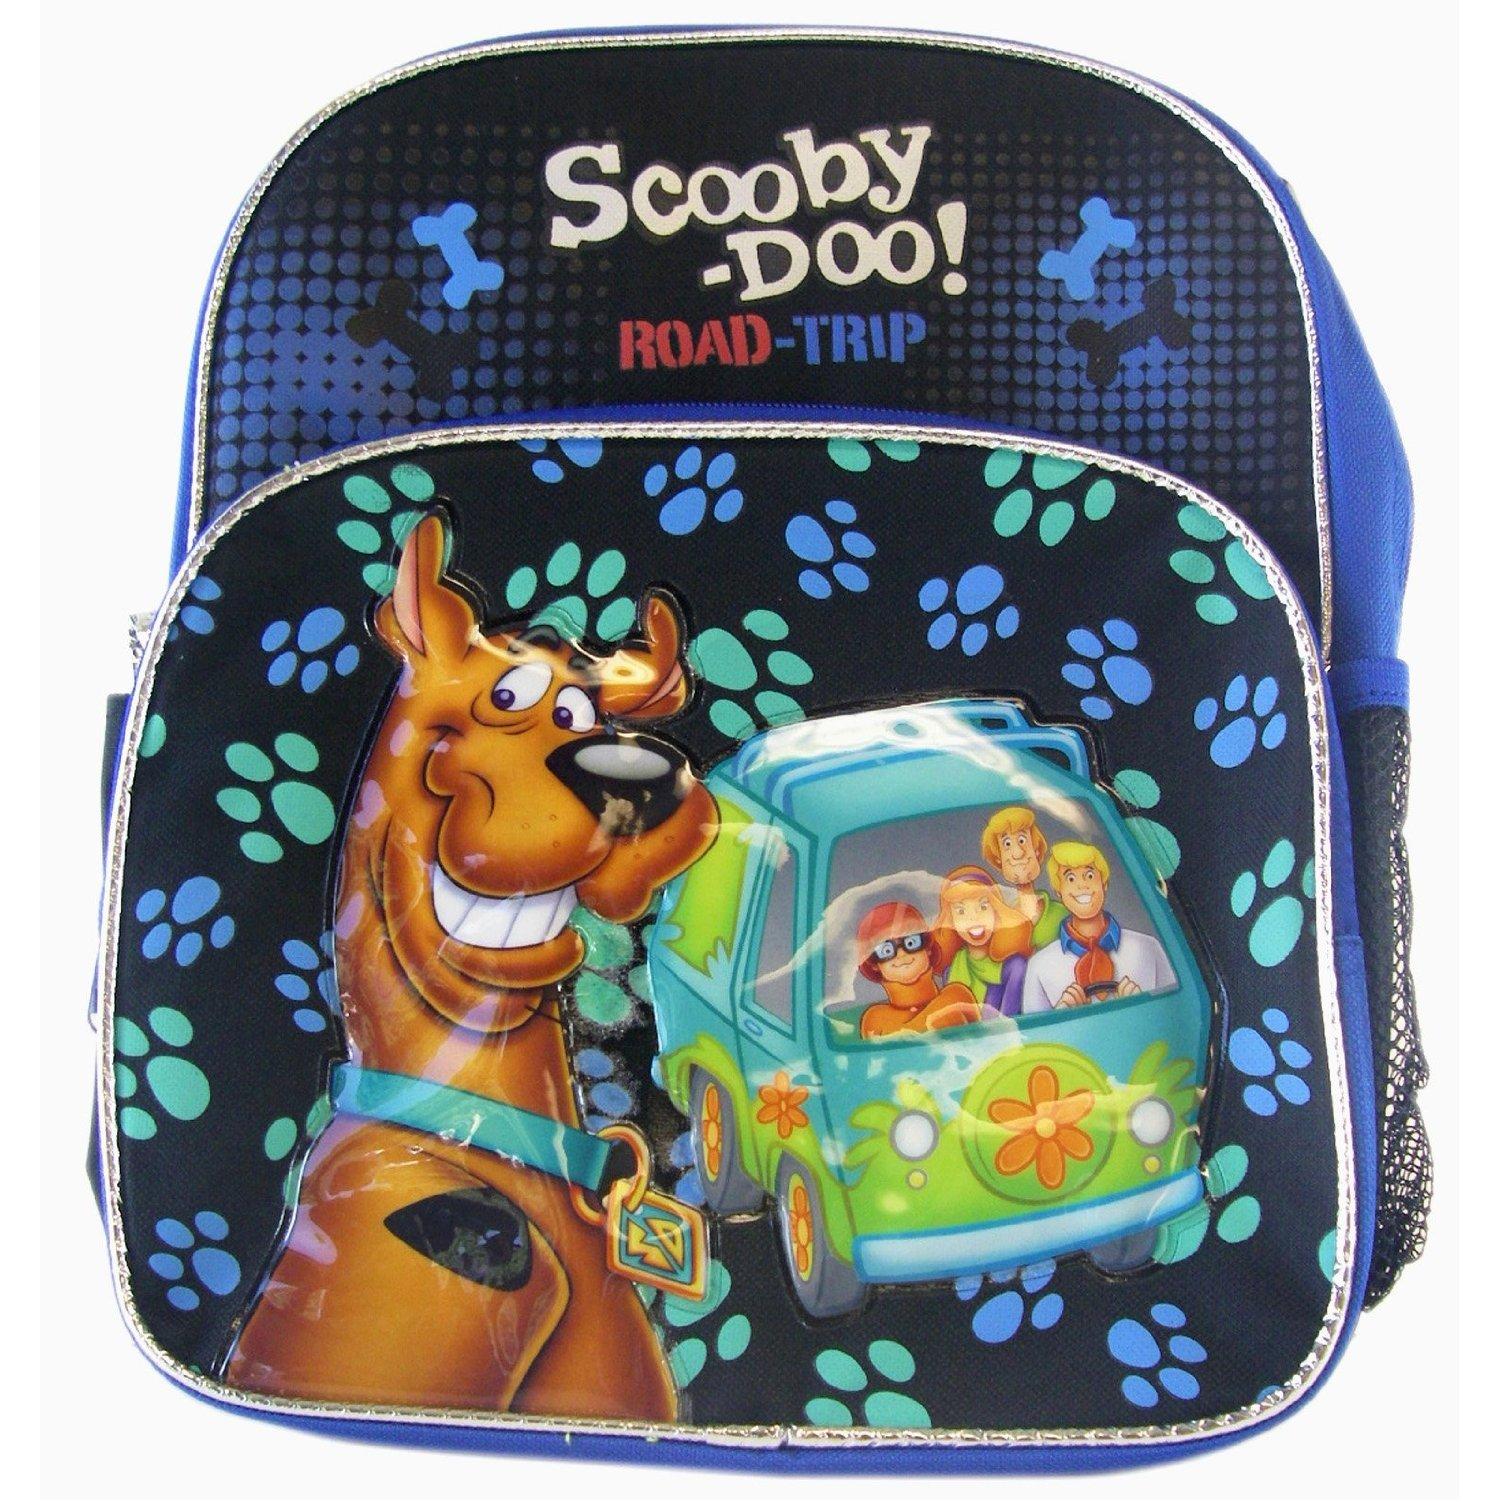 Small Backpack - Scooby Doo - Road Trip New School Bag Book Boys 49868 B0045WE4SI